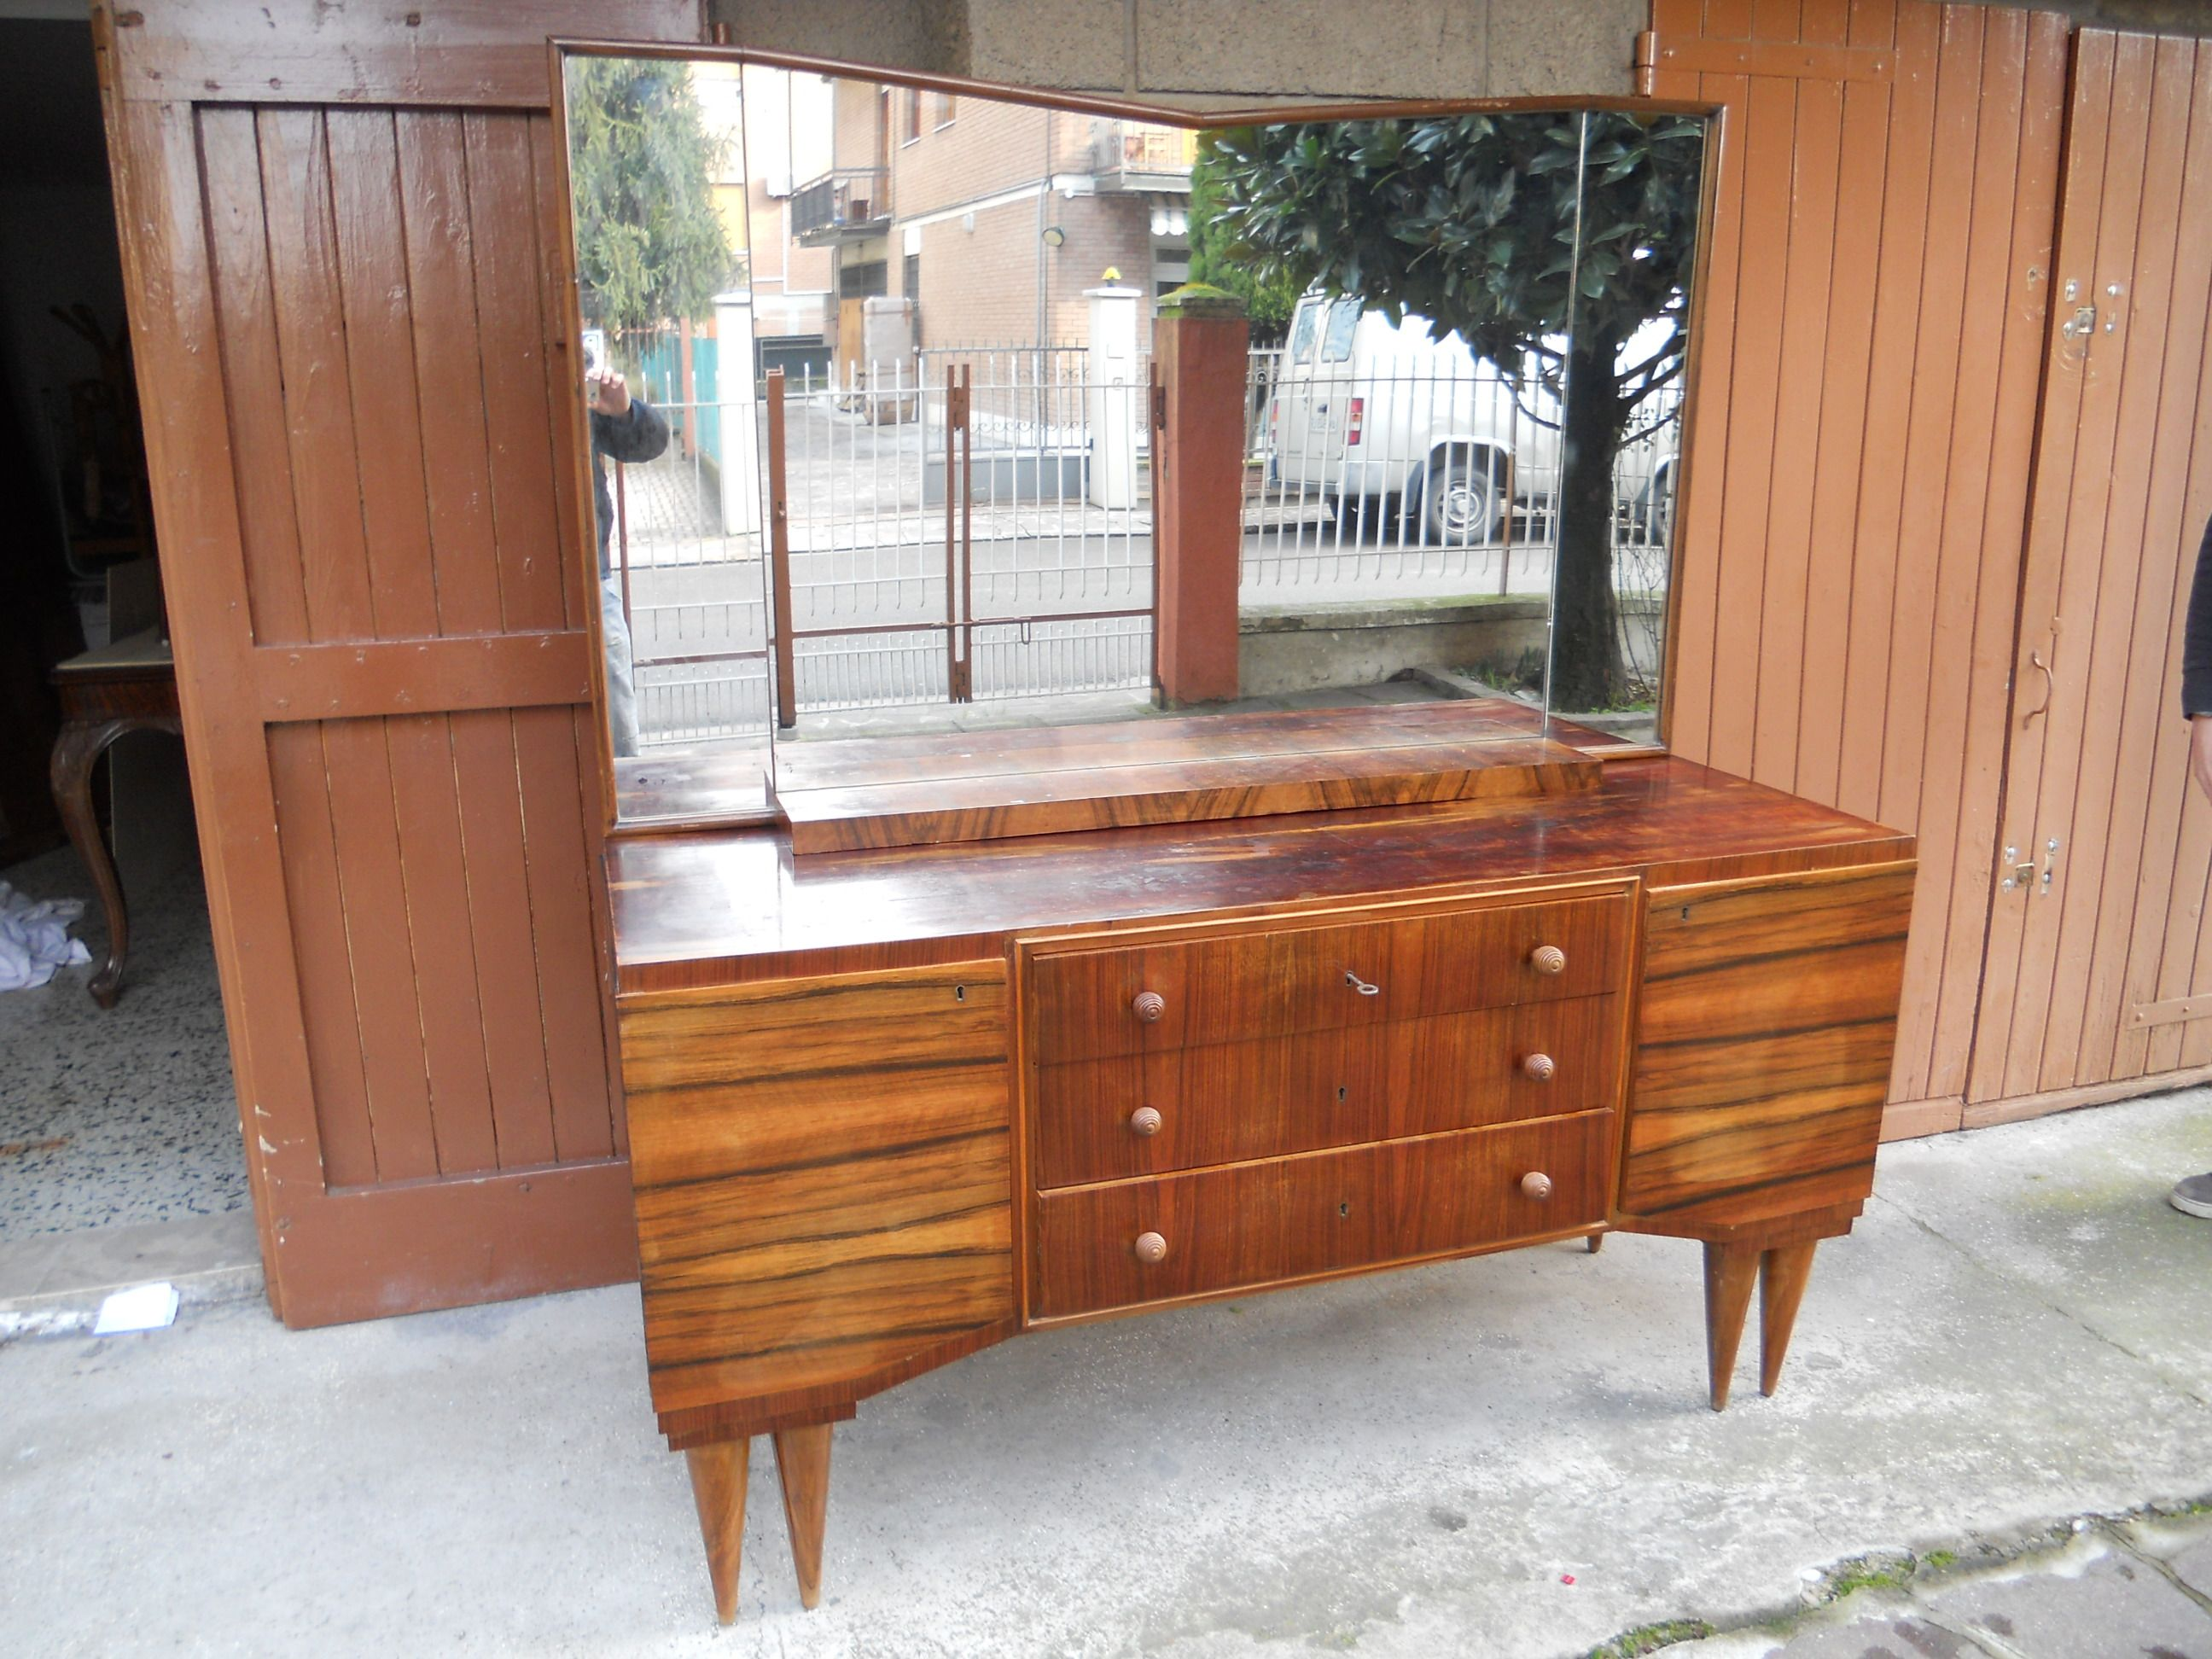 Italian Walnut Art Deco Bedroom Suite From 1940 At The Manner Of Gio Ponti Ebay